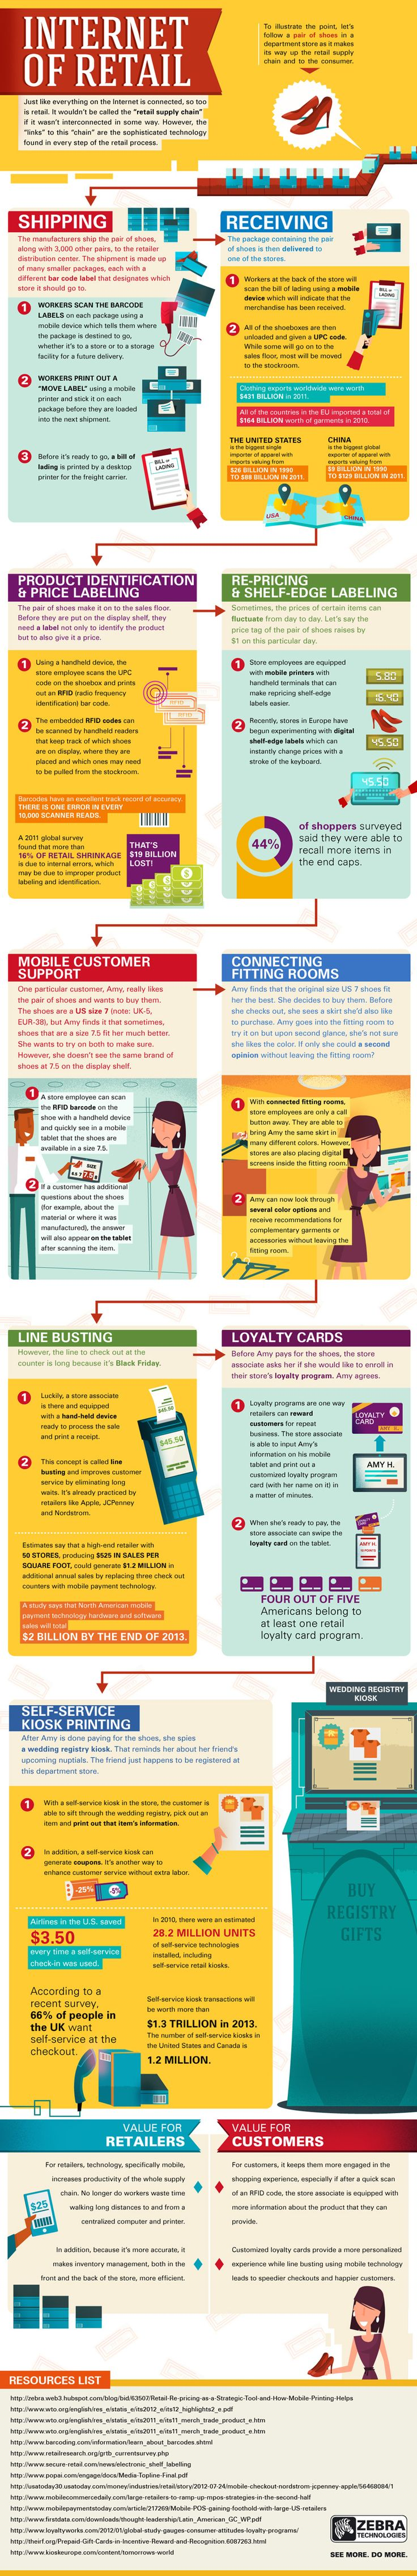 Internet Of Retail  #Infographic #Ecommerce #OnlineShopping